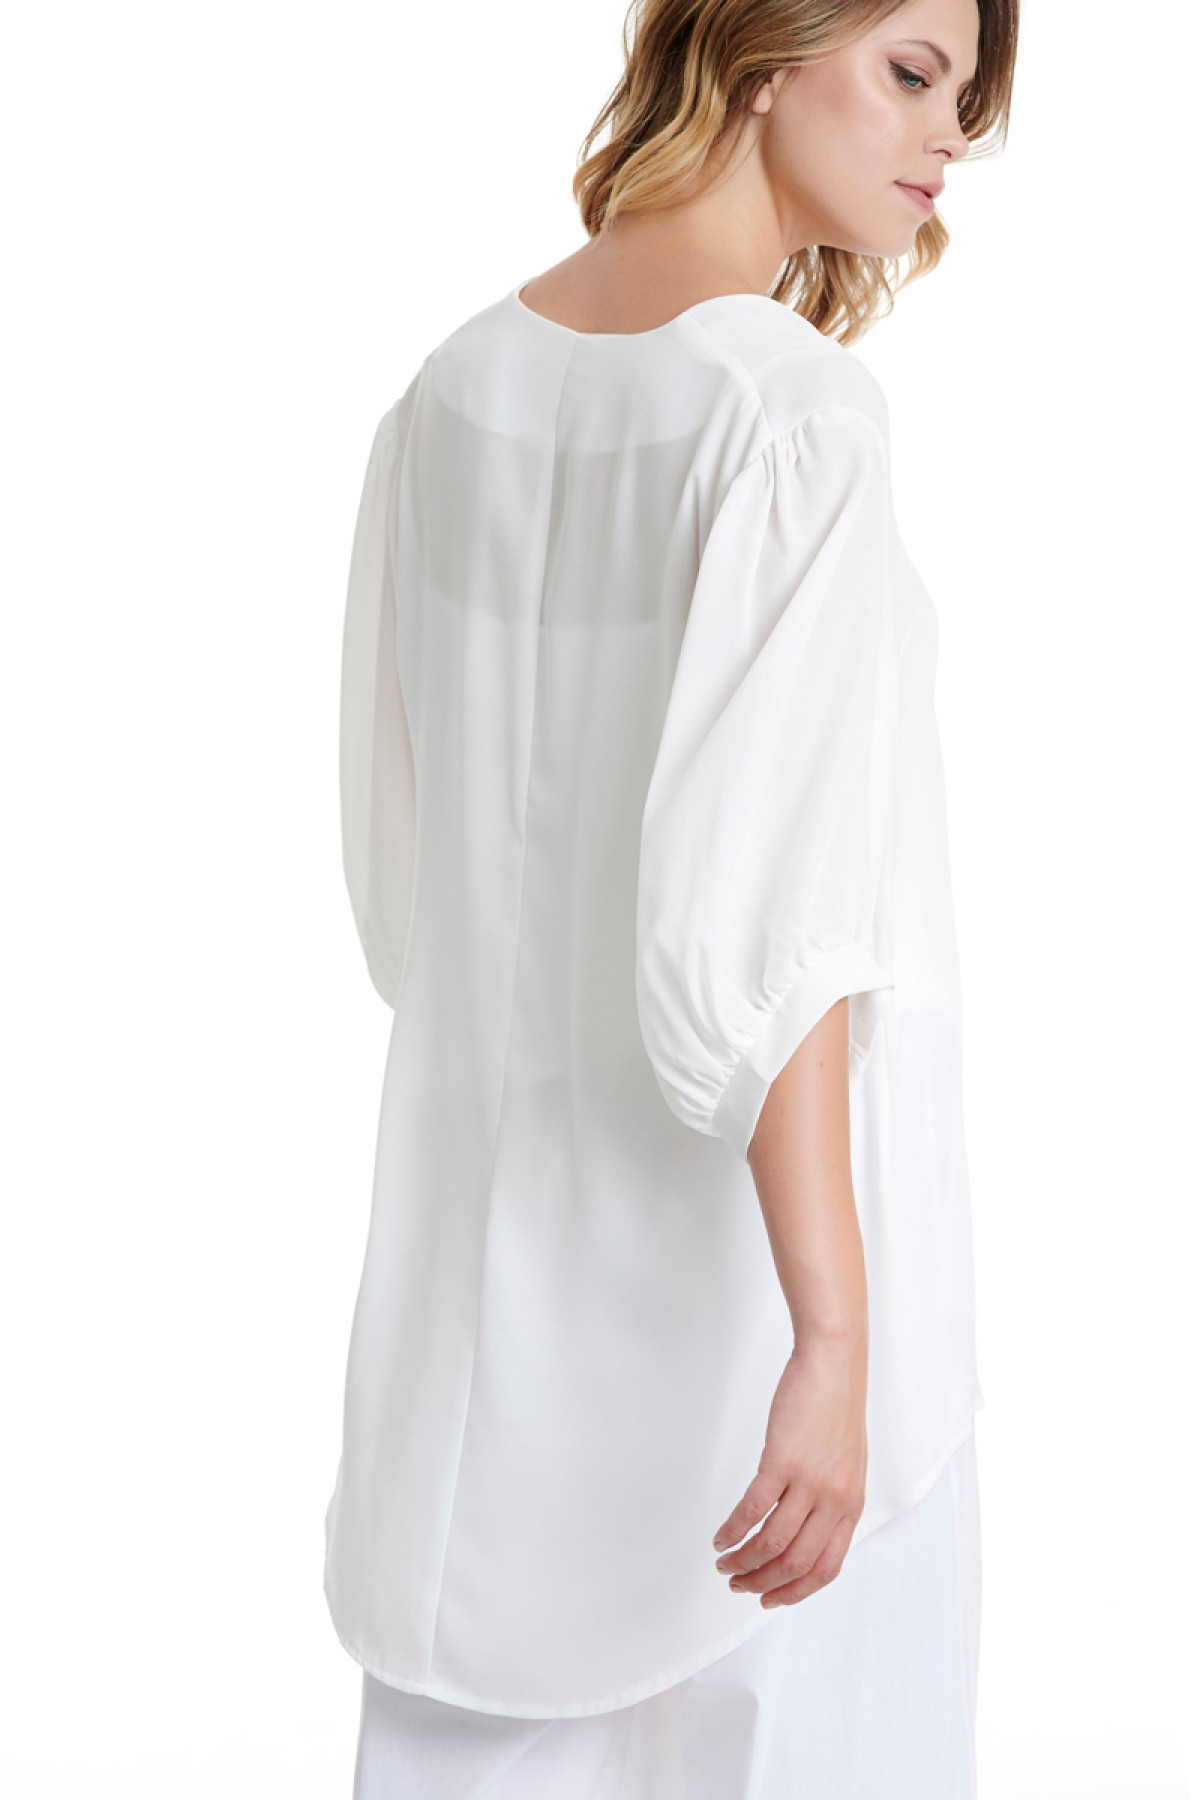 WHITE LONG CHIFFON BLOUSE